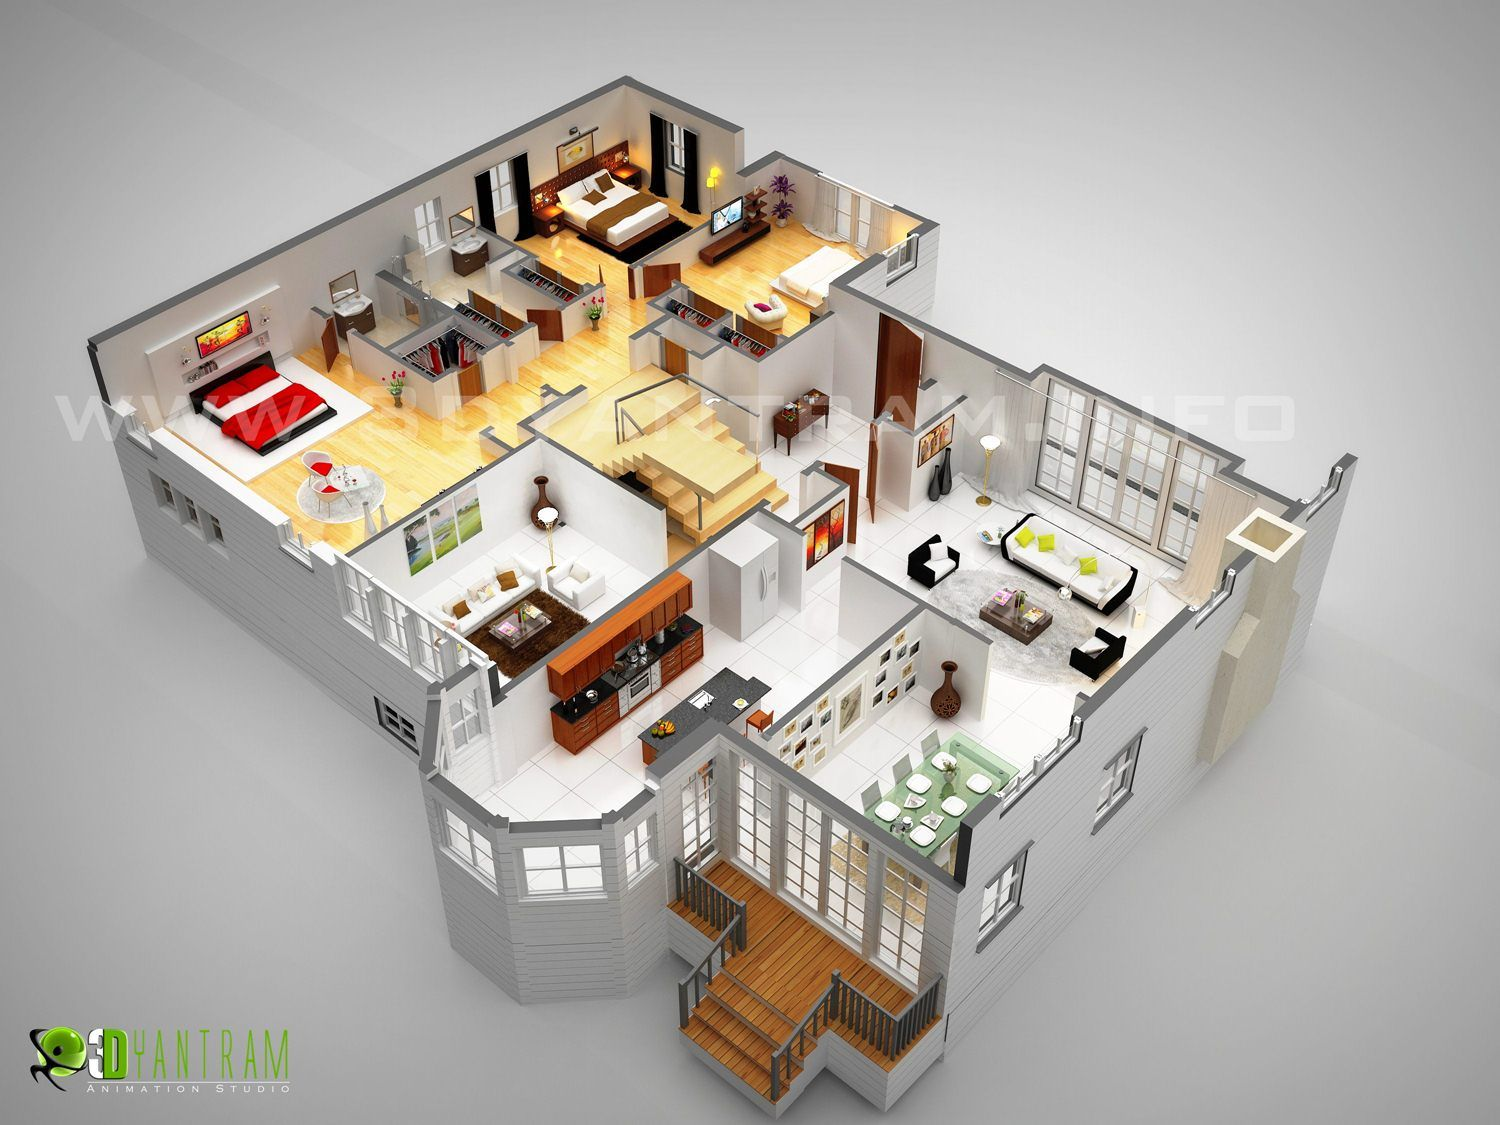 Studio Plans And Designs laxurious residential 3d floor plan paris | sims | pinterest | 3d